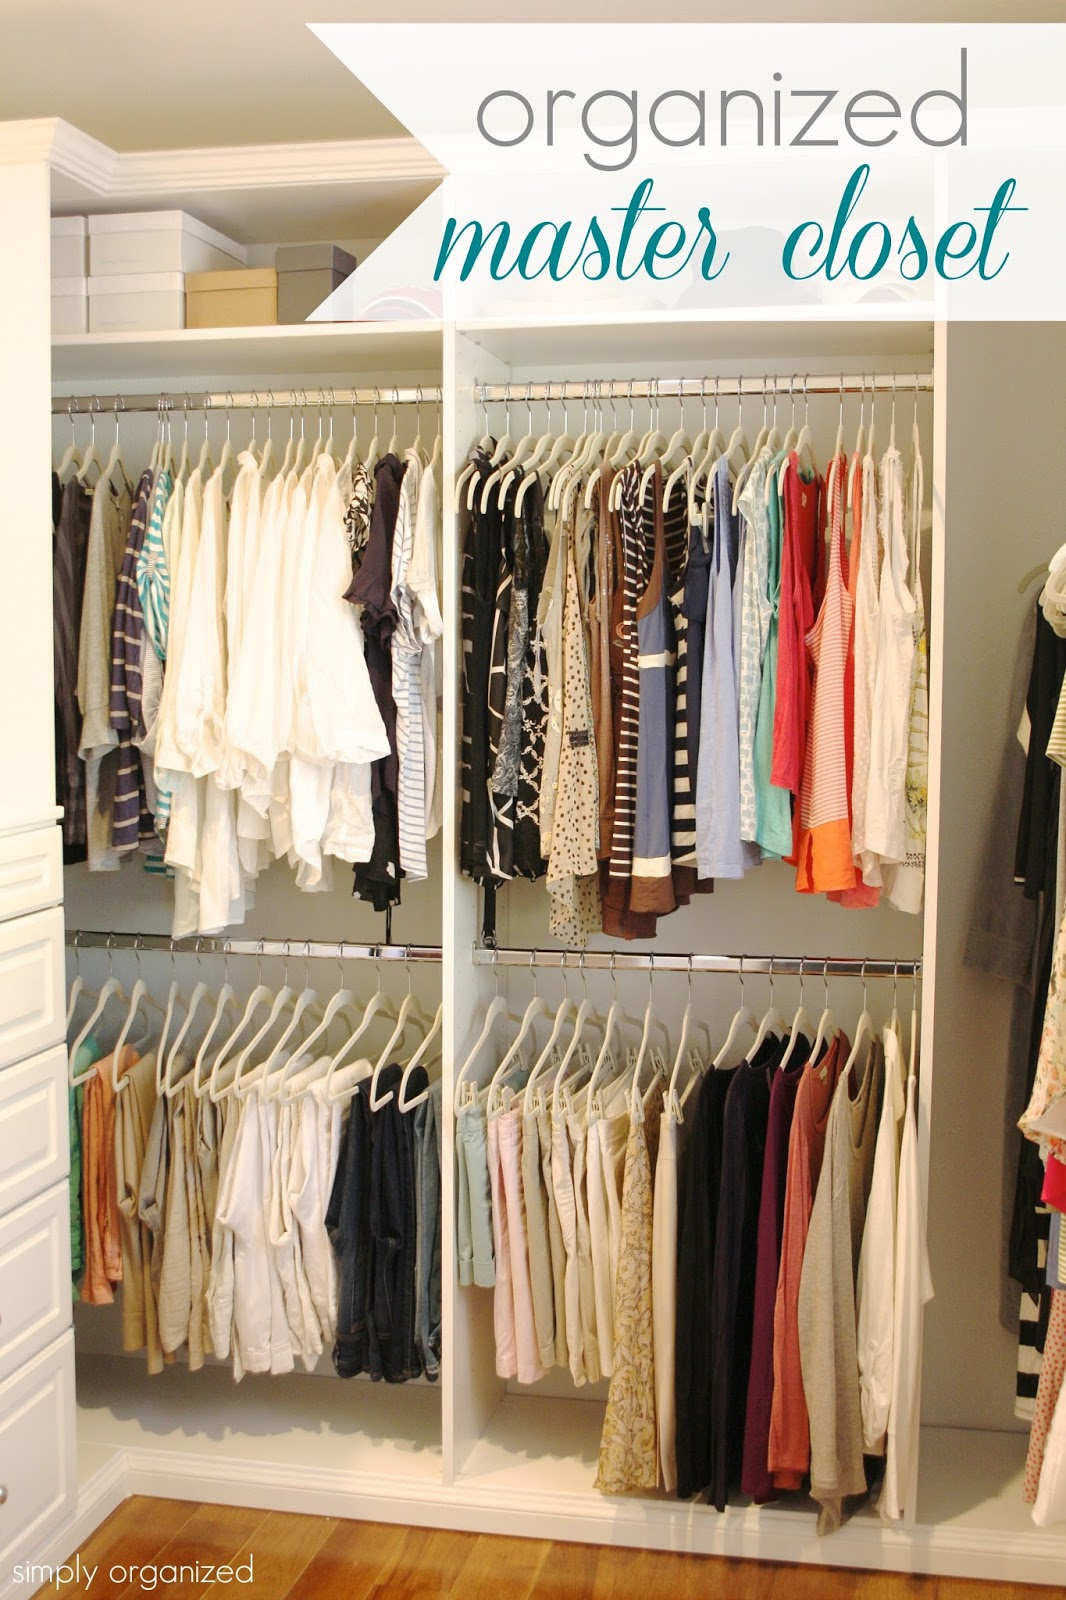 Simply organized organized master closet for How to organize your closets